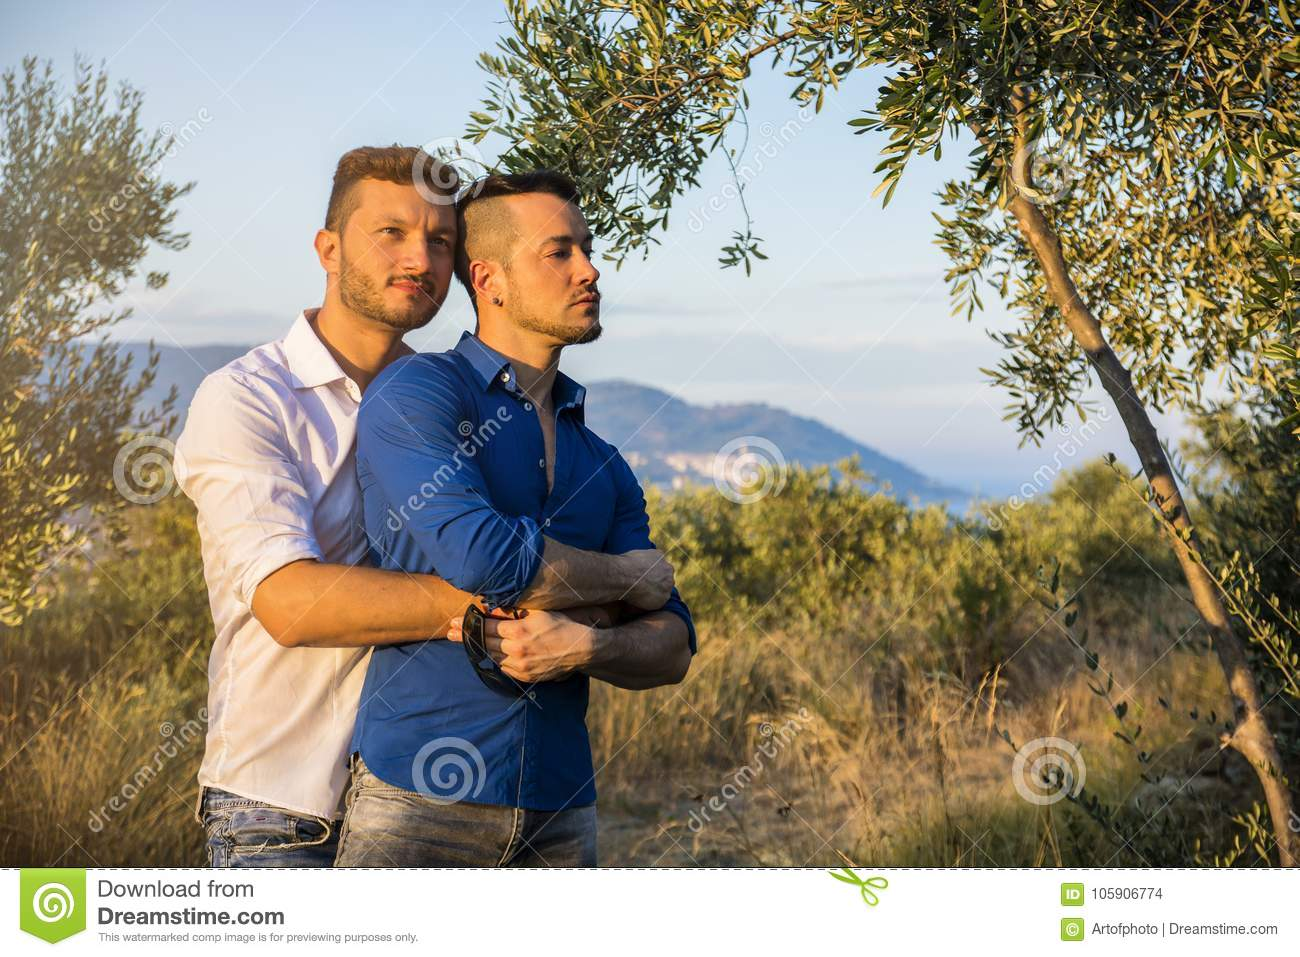 Gay couple in nature